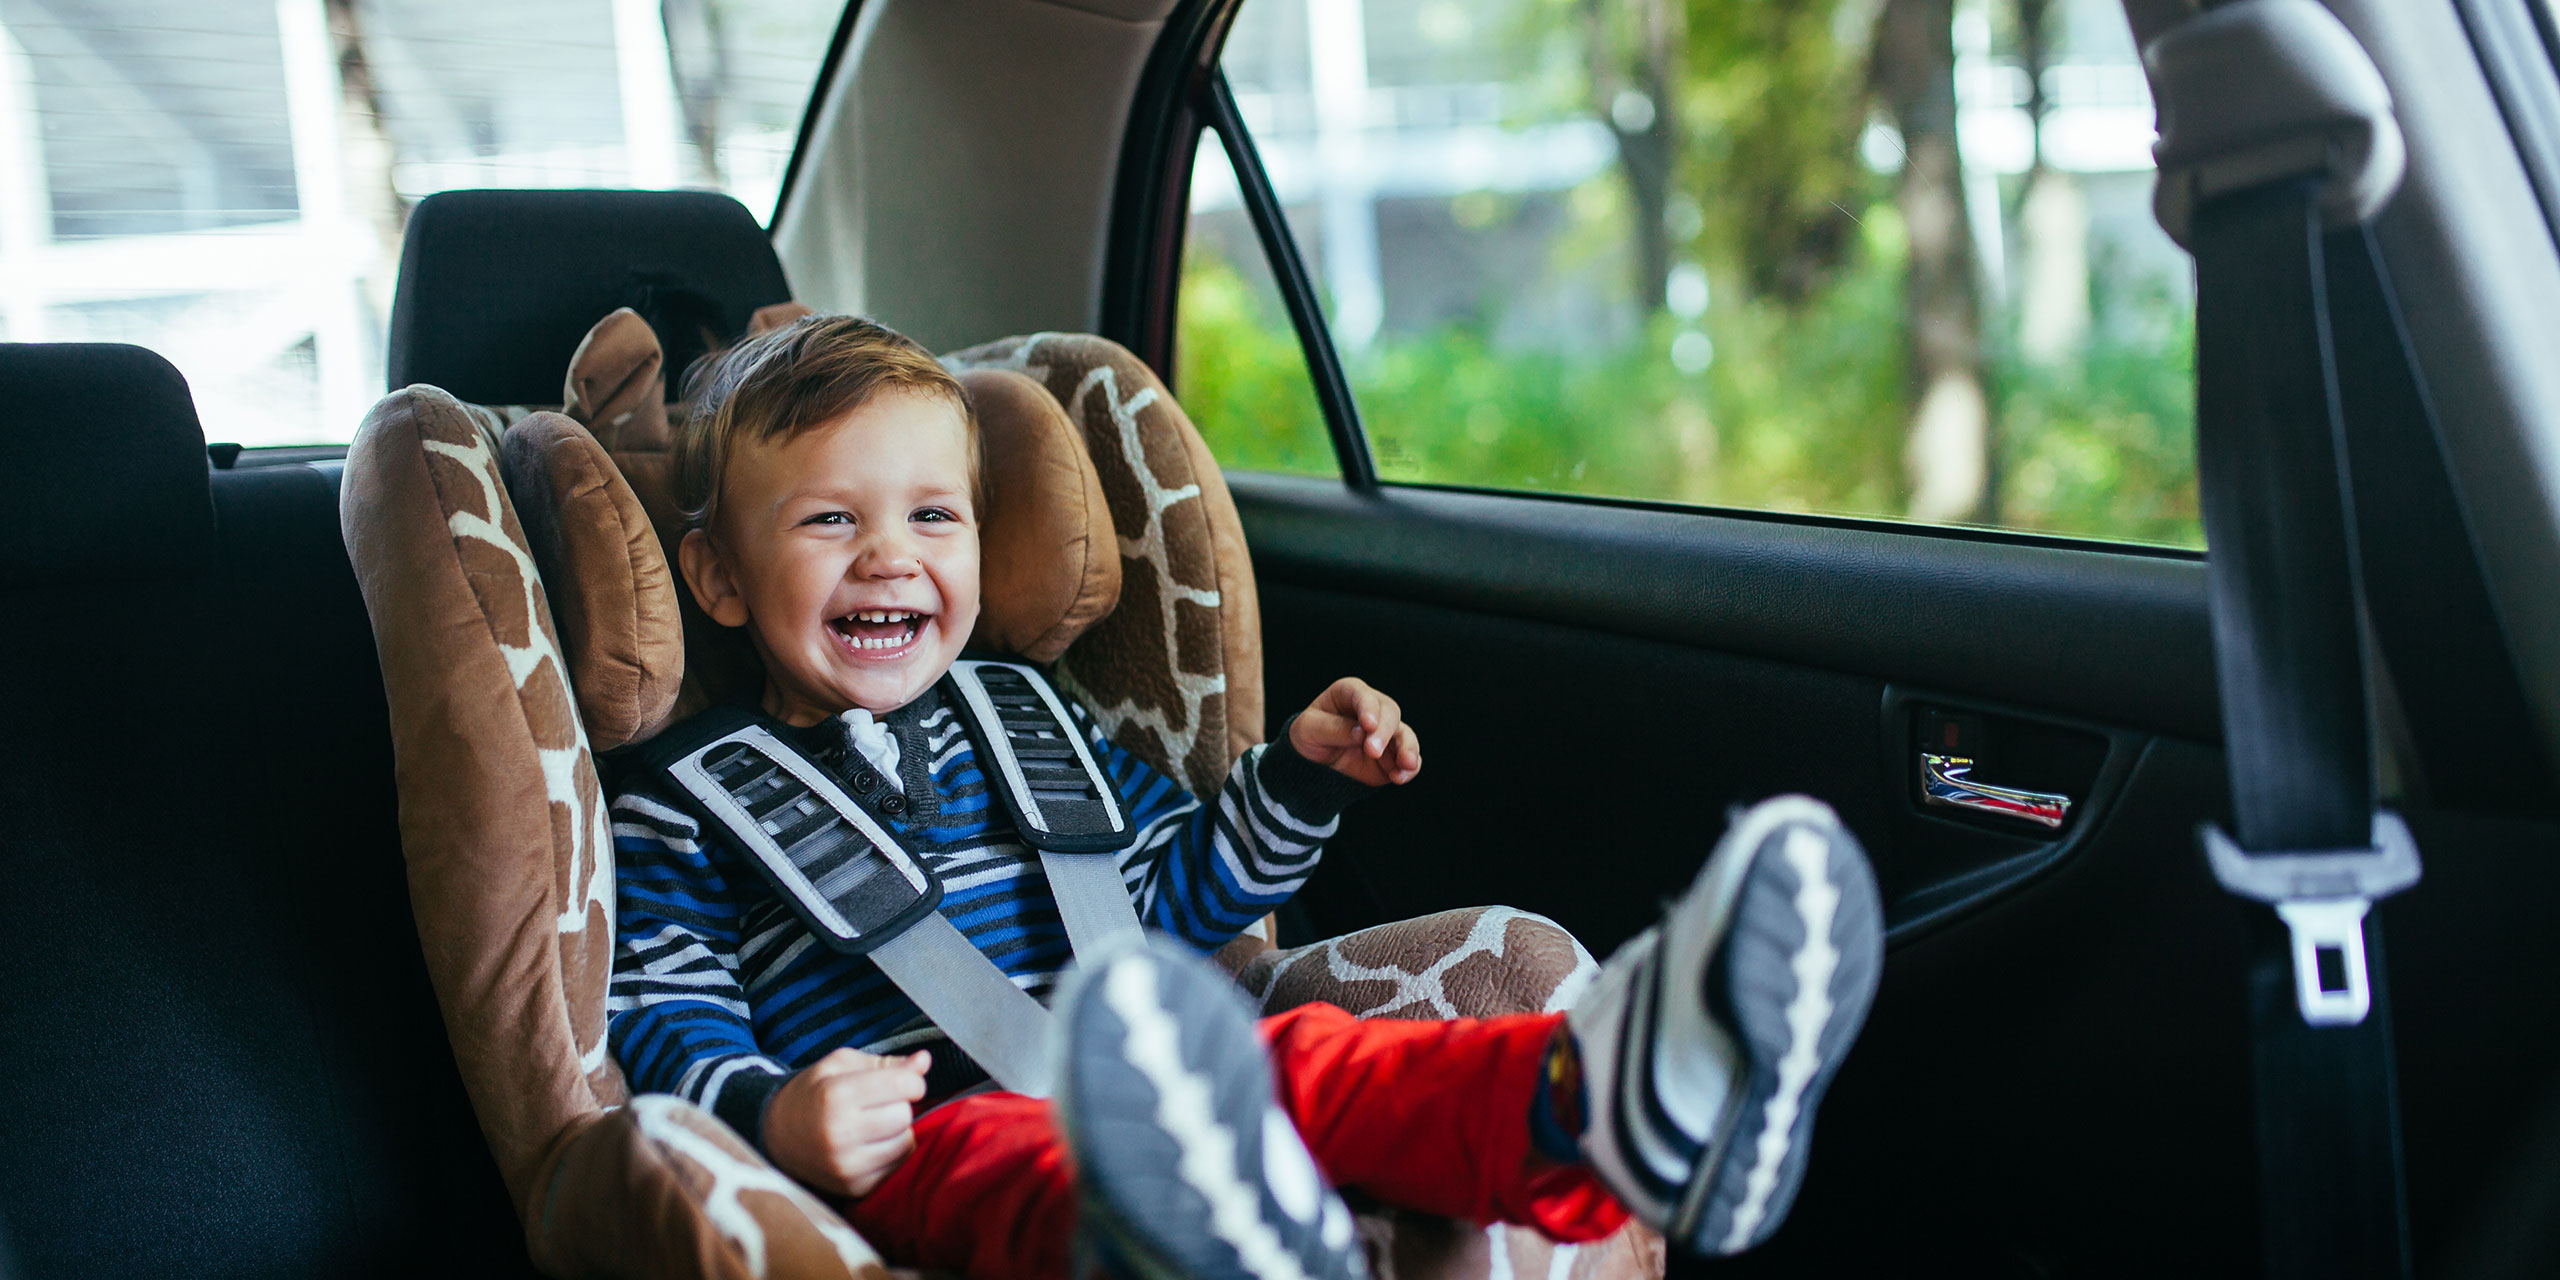 Toddler in Car Seat; Courtesy of David Tadevosian/Shutterstock.com